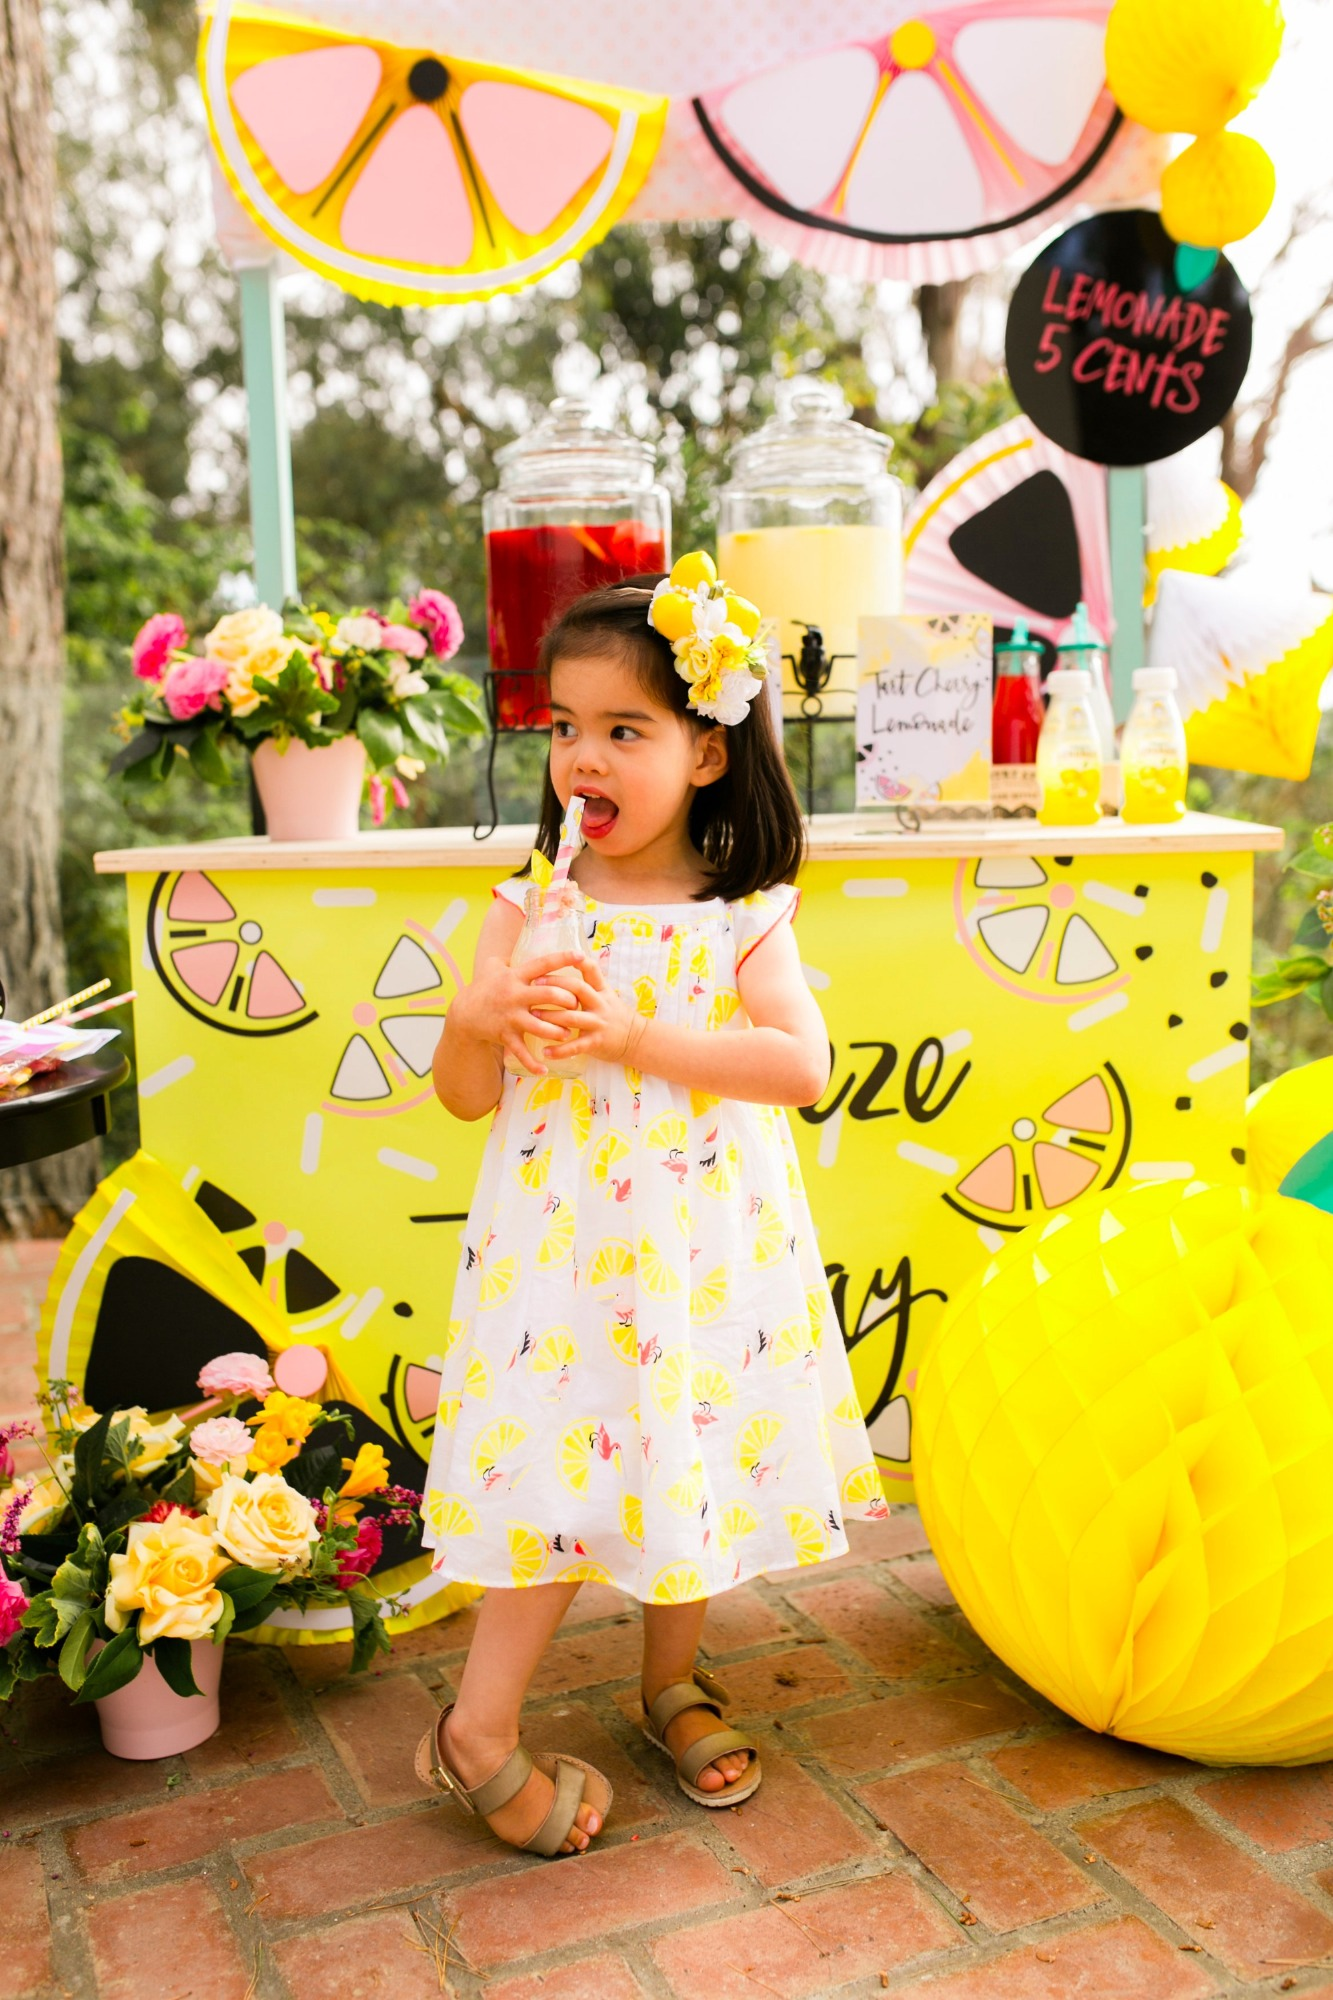 Birthday girl and lemonade stand from Lemonade Stand Birthday Party by Forrest and J. | Black Twine